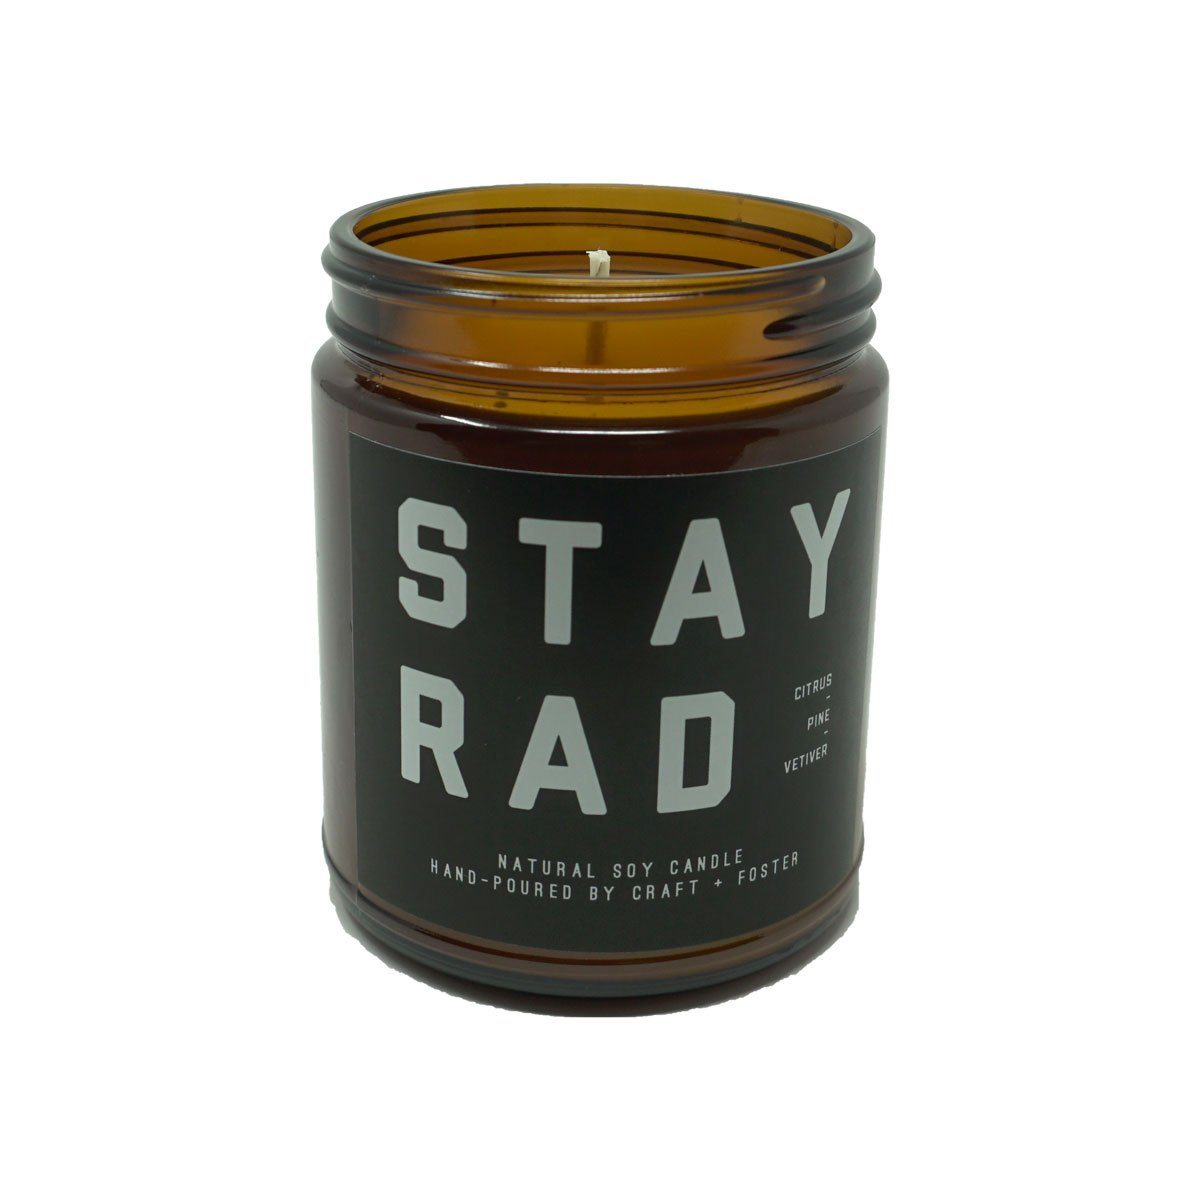 RAD Candle Health & Beauty Craft & Foster